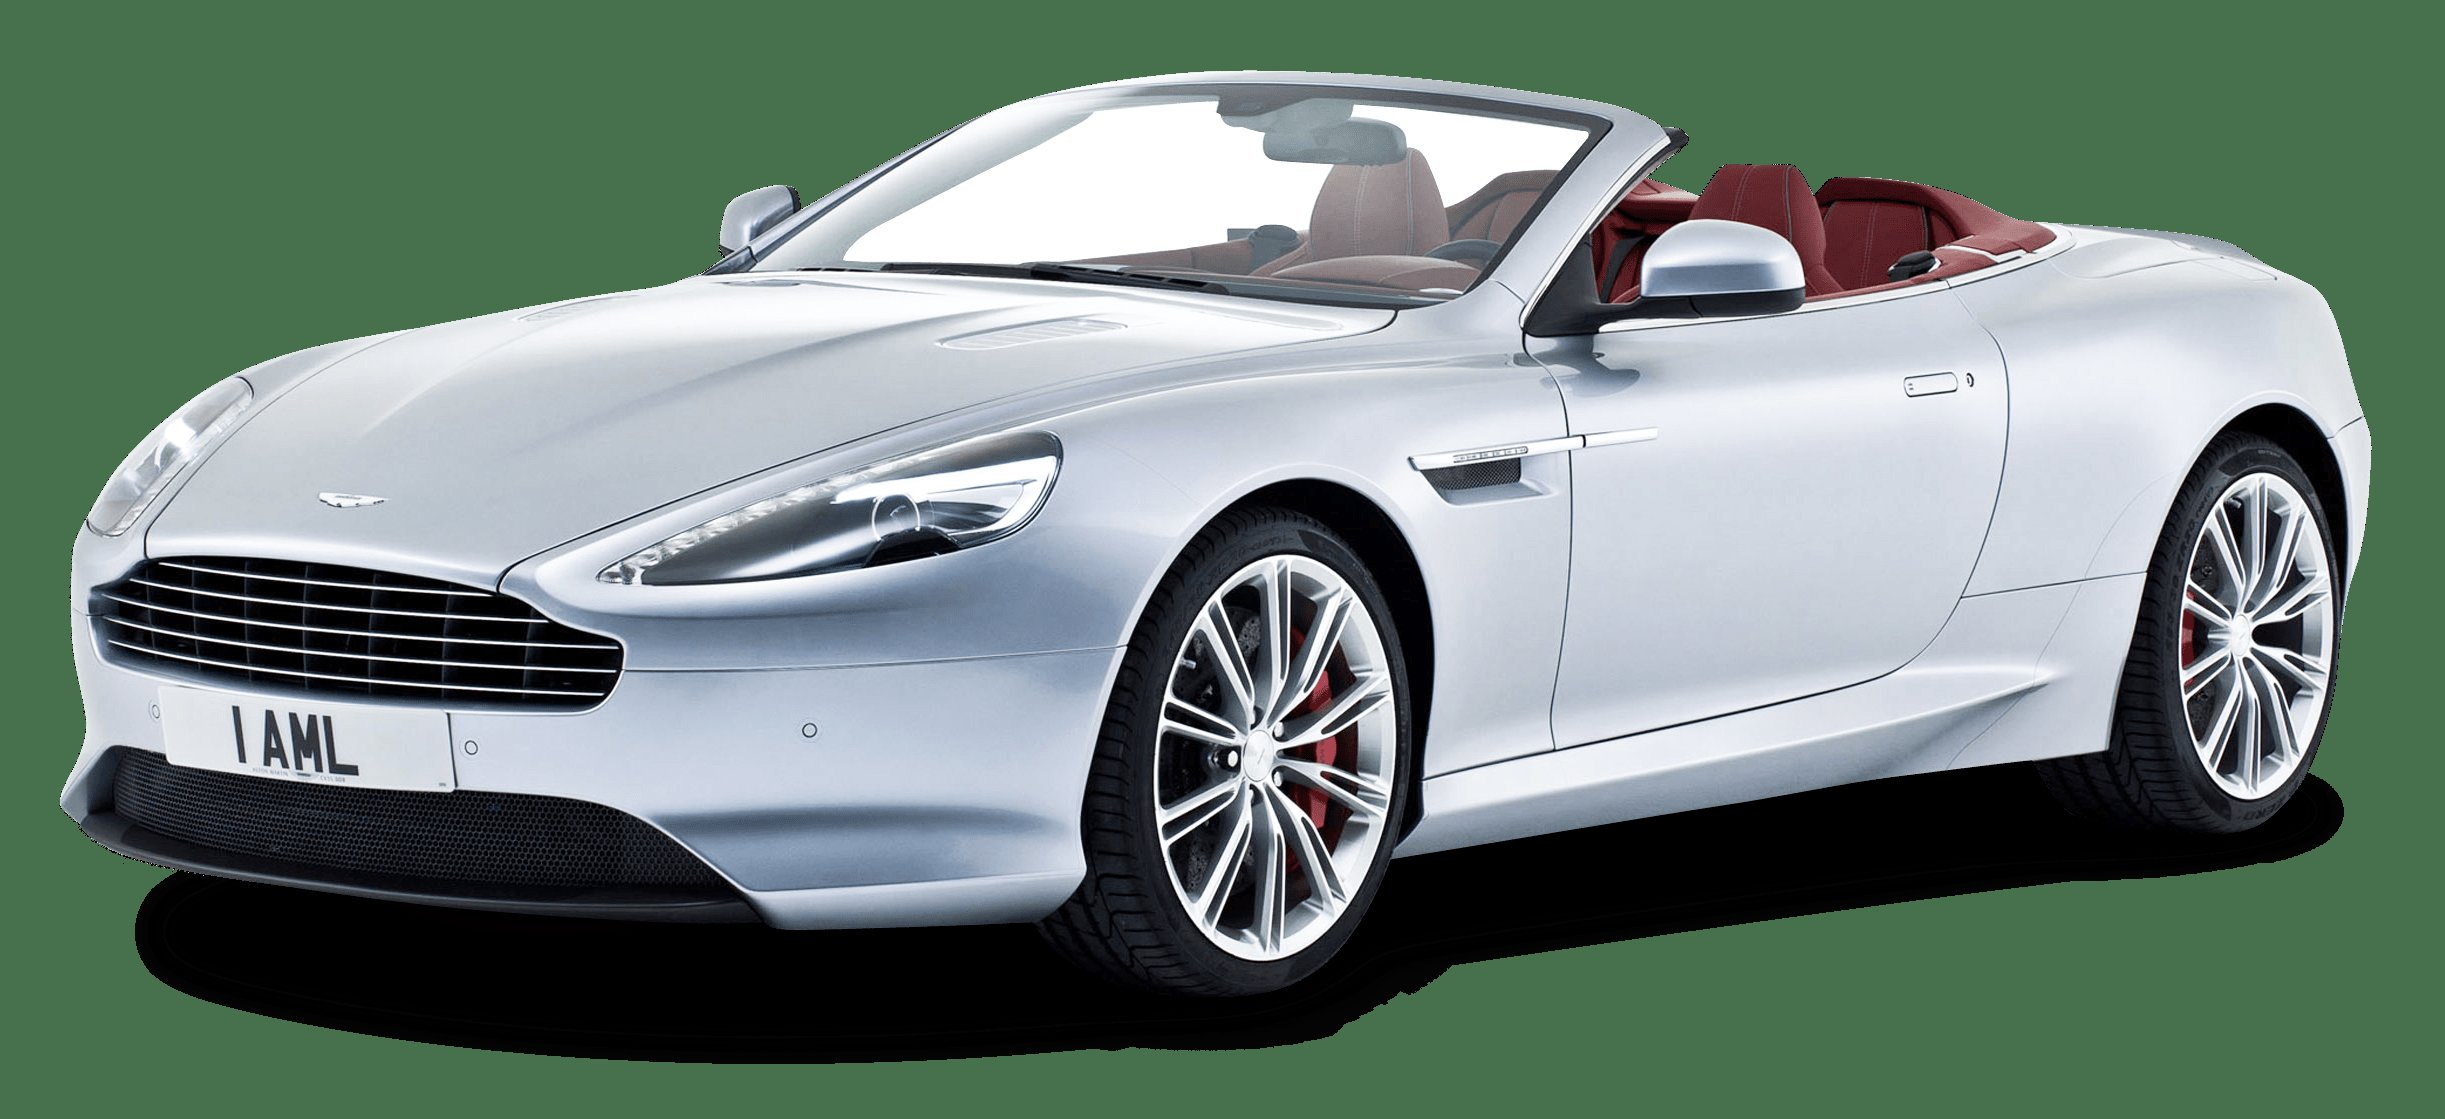 Latest Aston Martin Db9 Coupe Car Png Image Pngpix Free Download